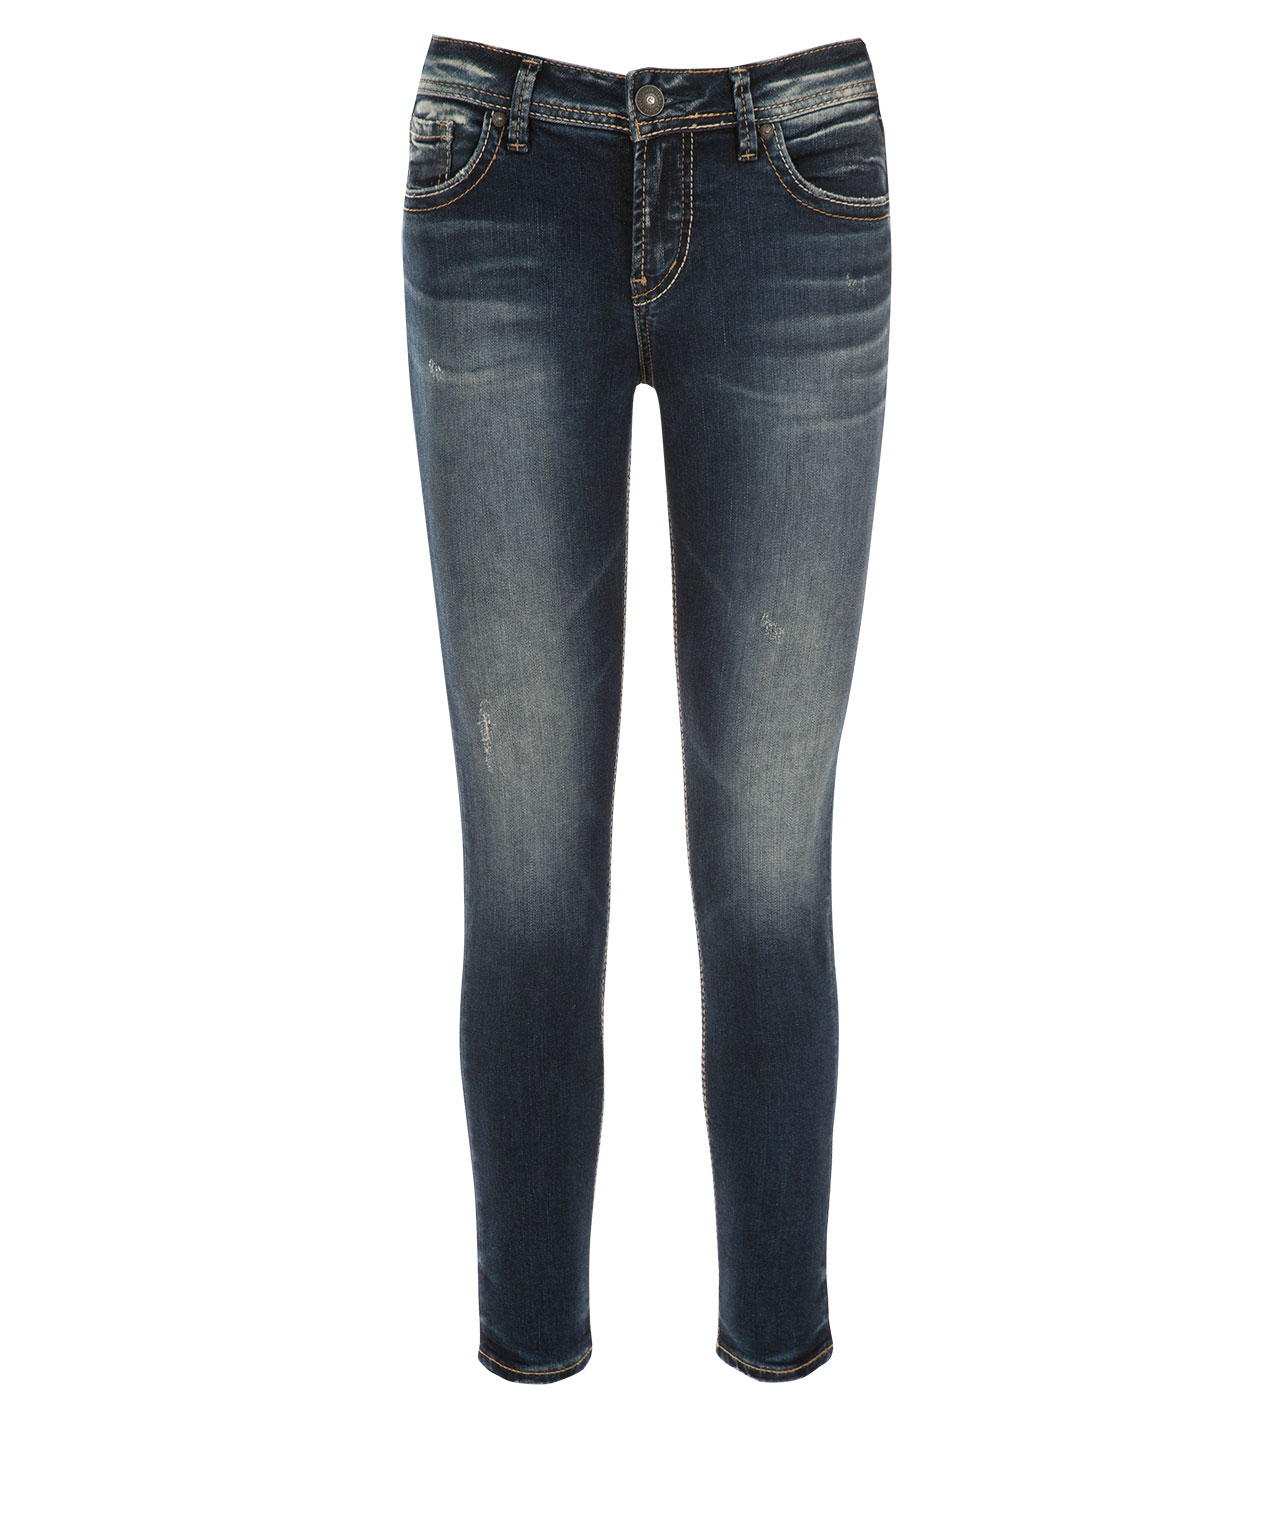 Silver Jeans Co. Avery Ankle Jean | Rickis